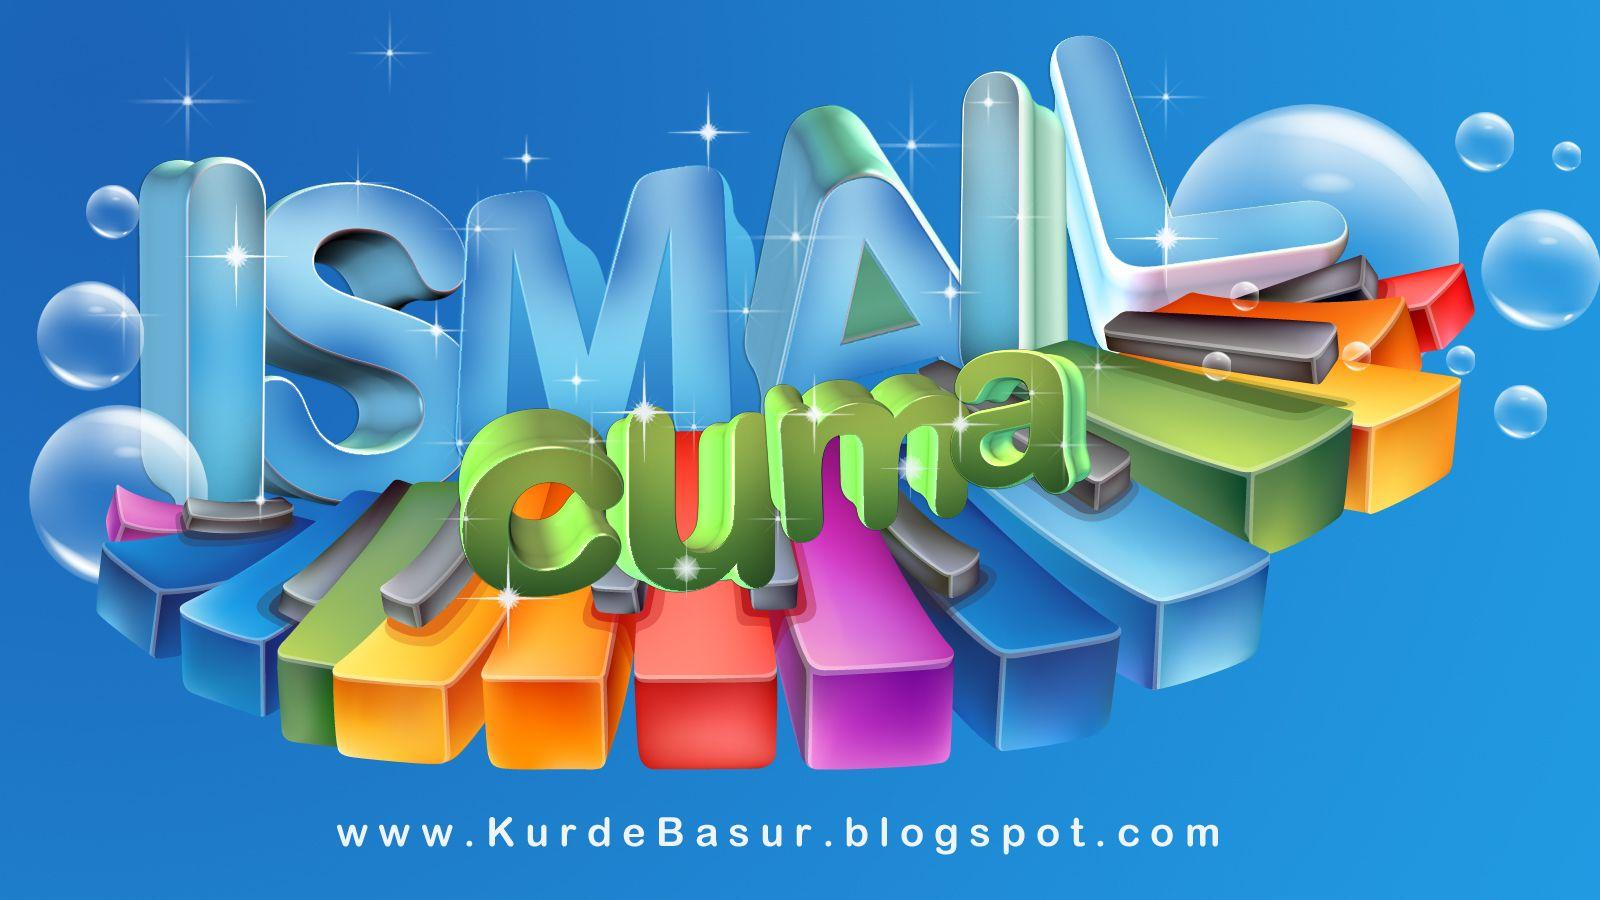 3d Name Wallpapers Ismail - Wallpaper Cave